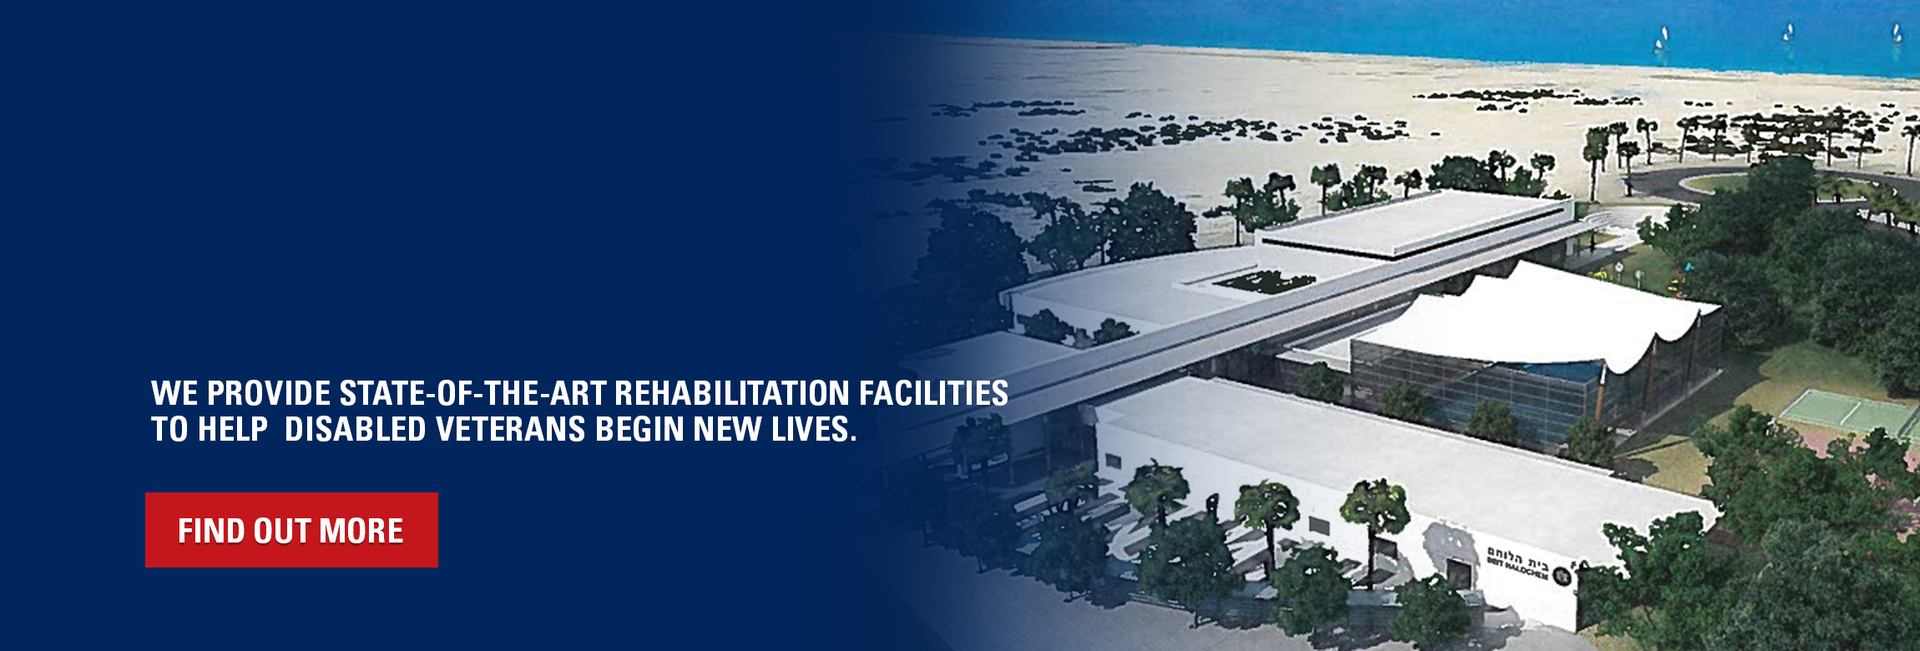 We provide state-of-the-art rehabilitation facilities to help 51,000 disabled veterans begin new lives.